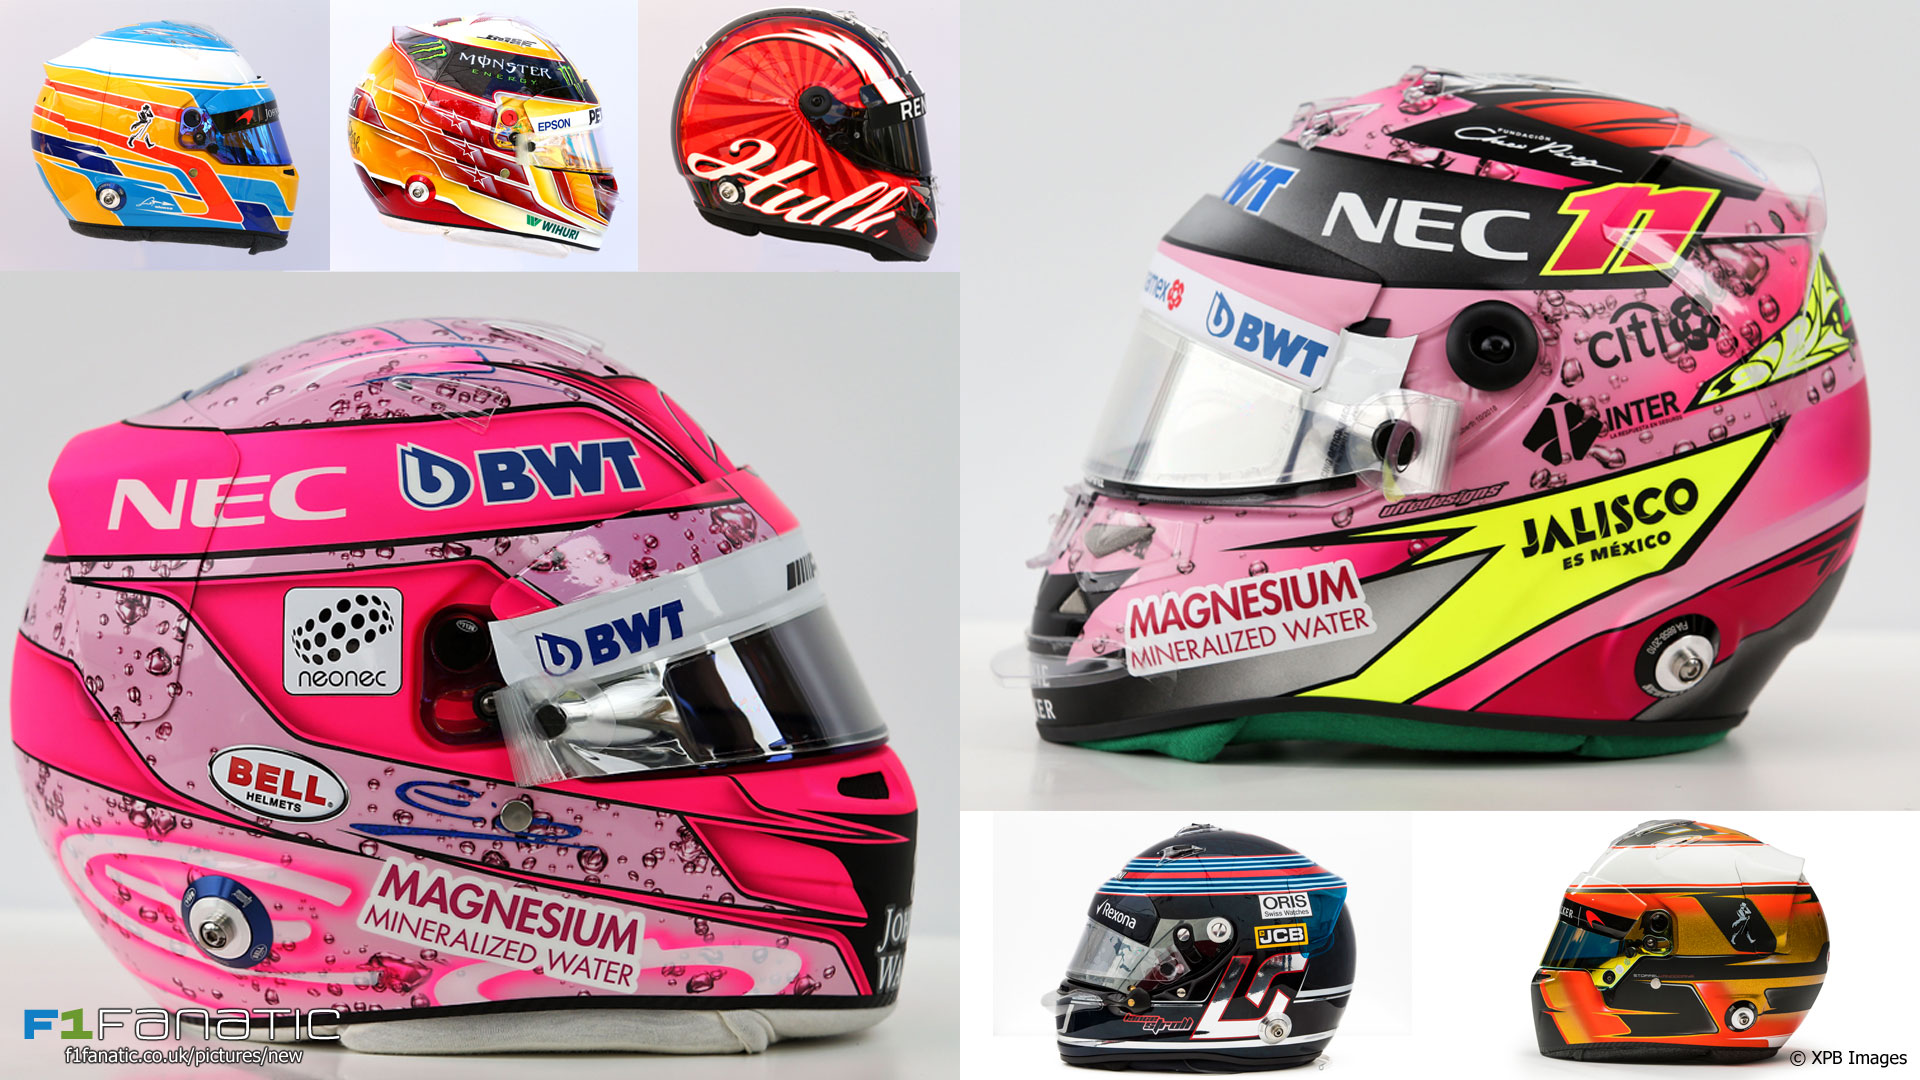 F1 2017 Drivers In Pictures All 21 F1 Drivers Helmets For The 2017 Season Racefans